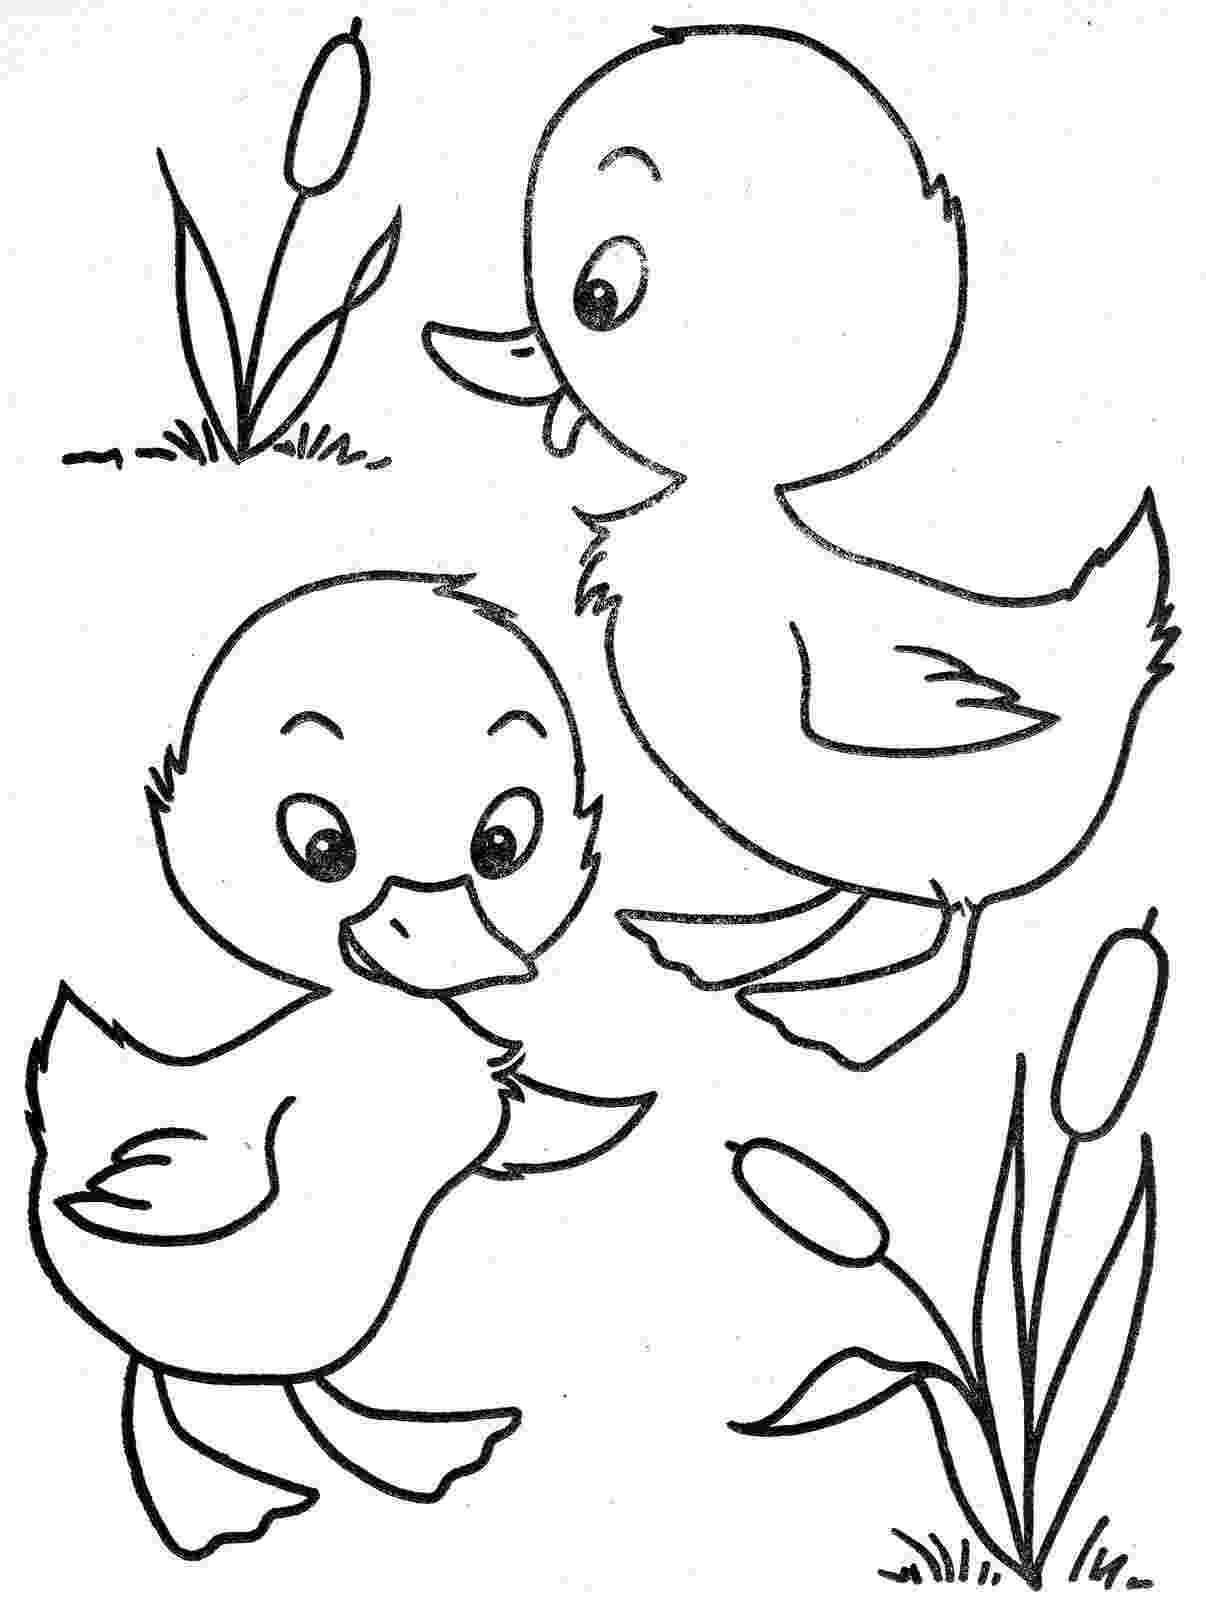 baby duck coloring pages duck coloring pages coloring pages bird coloring pages pages duck baby coloring